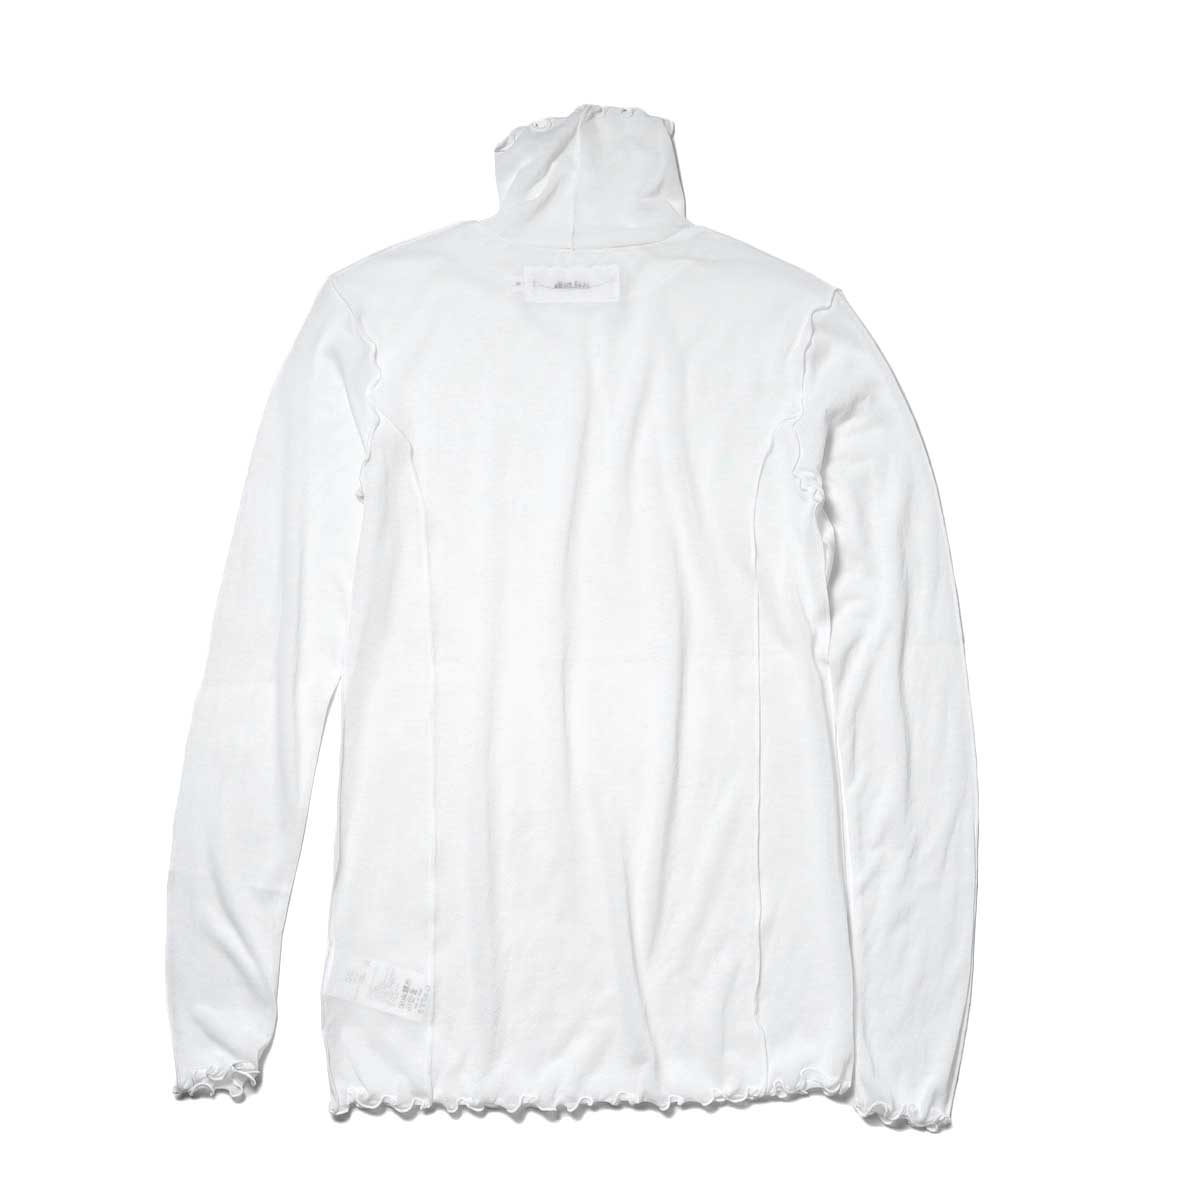 JANE SMITH / SHEAR BOW HIGHNECK PULLOVER (White) 背面